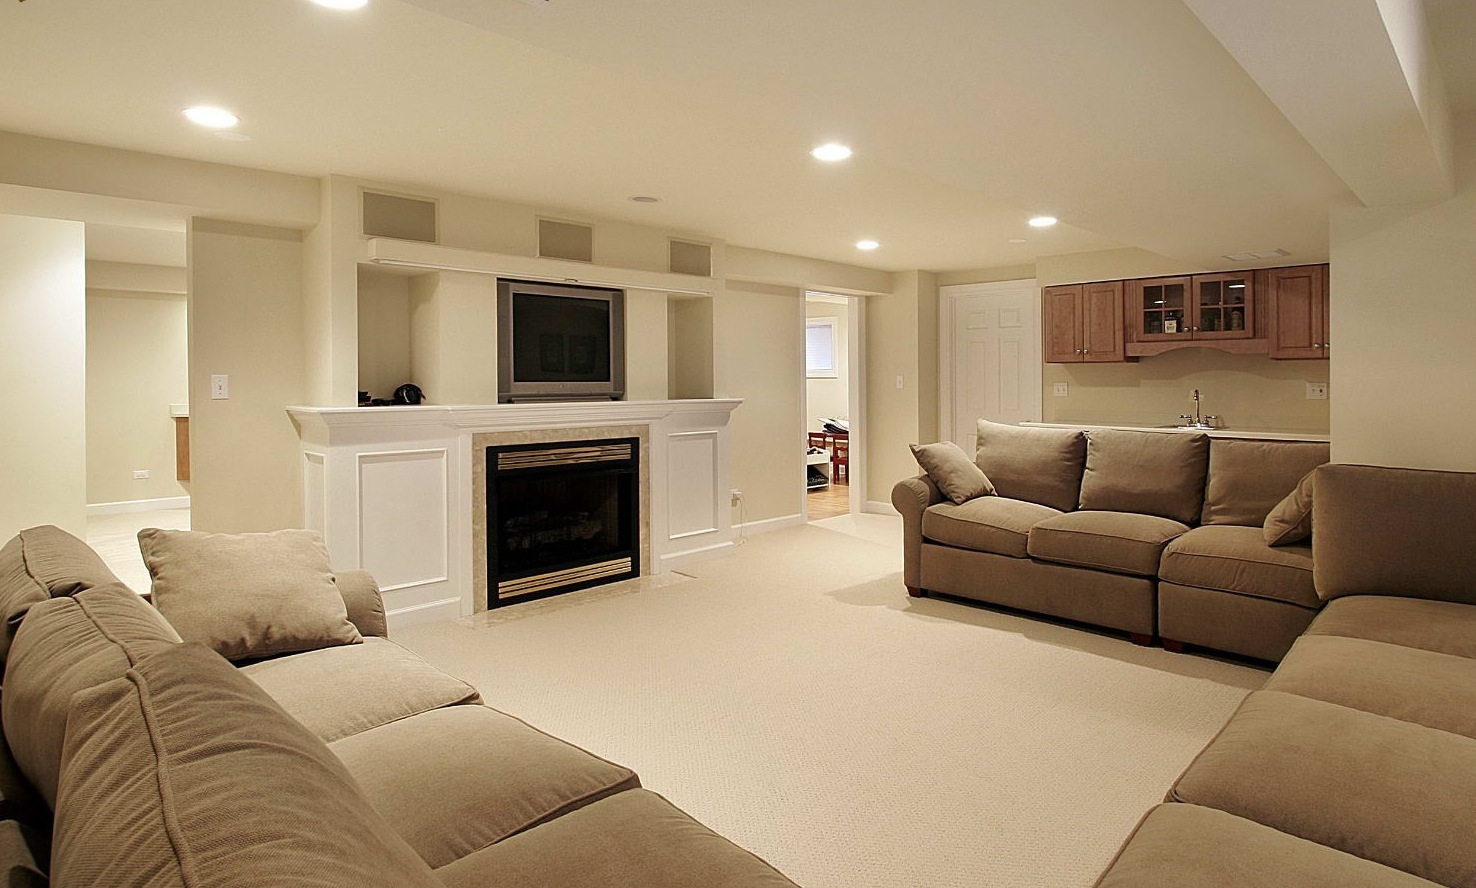 Simple Basement Designs related to basement storage space basement remodeling remodeling 30 Basement Remodeling Ideas Inspiration